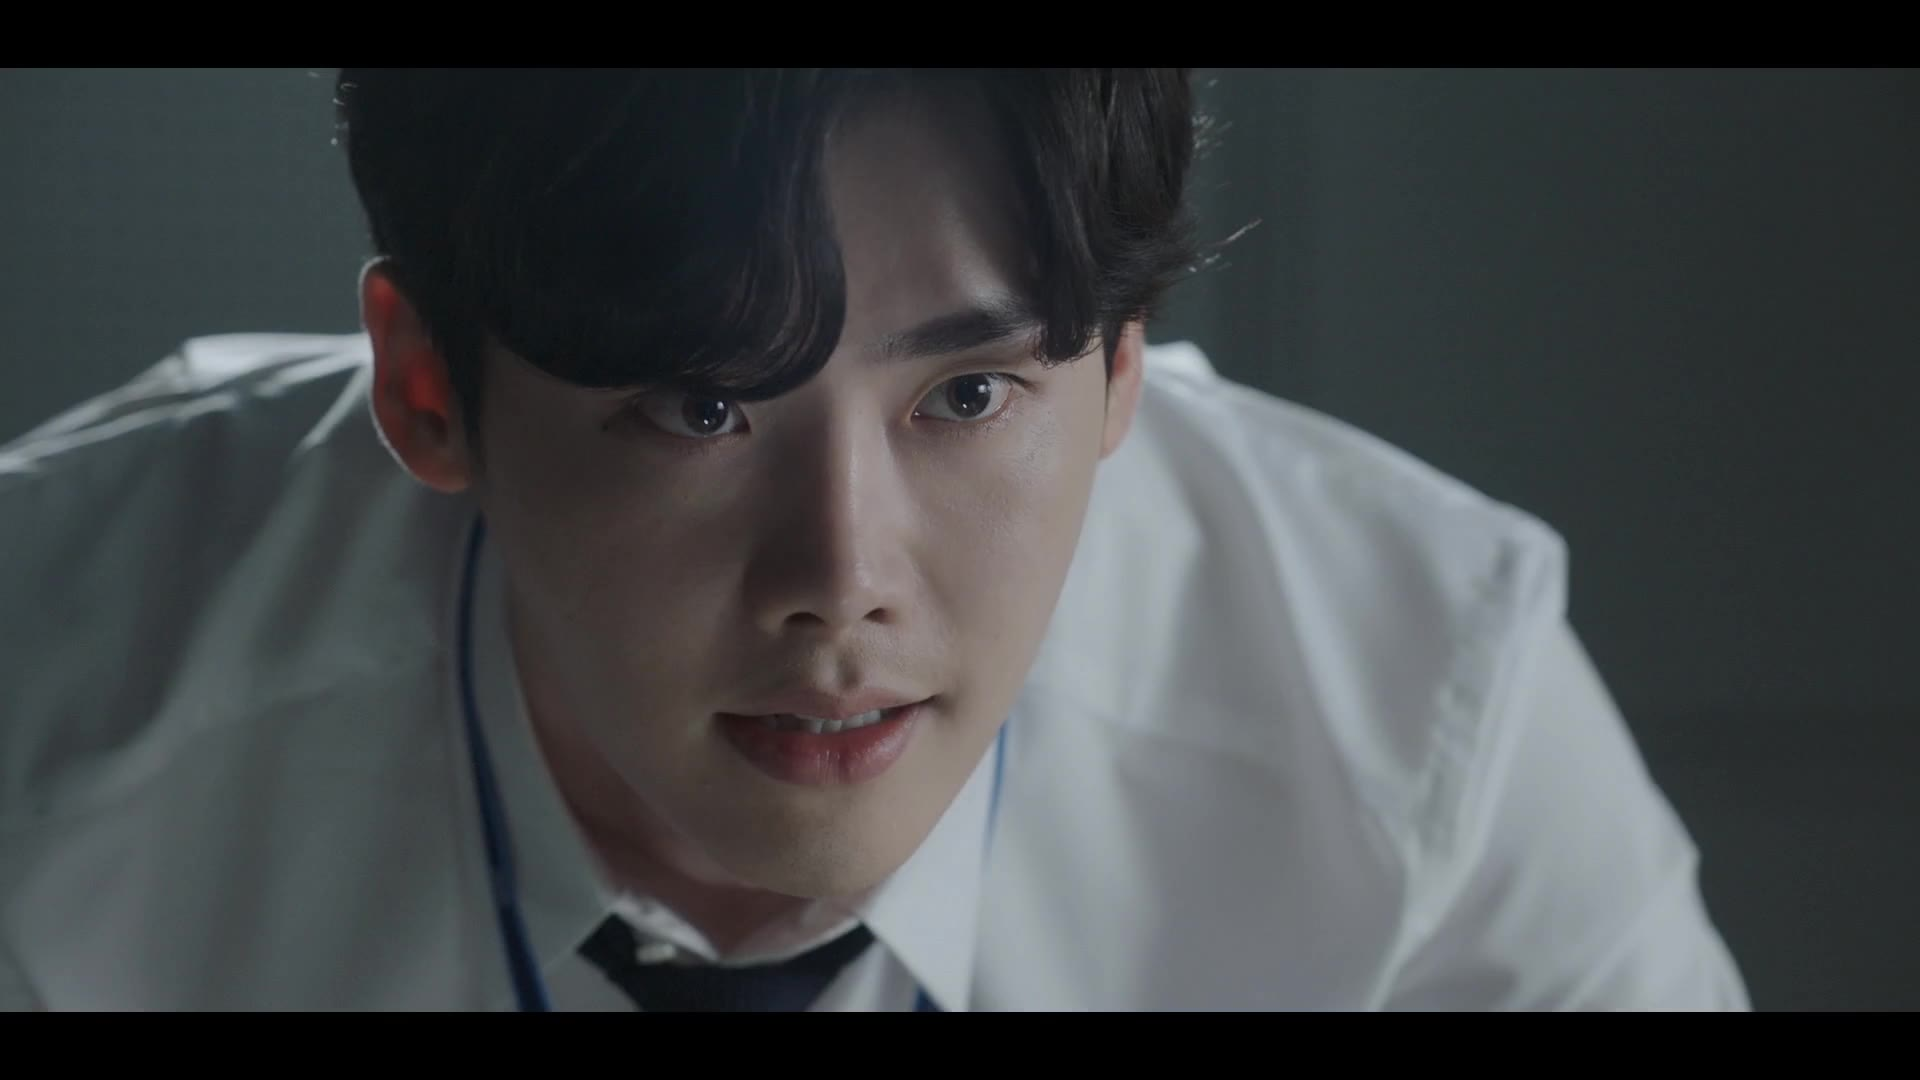 Teaser 3 - 34 sec: While You Were Sleeping